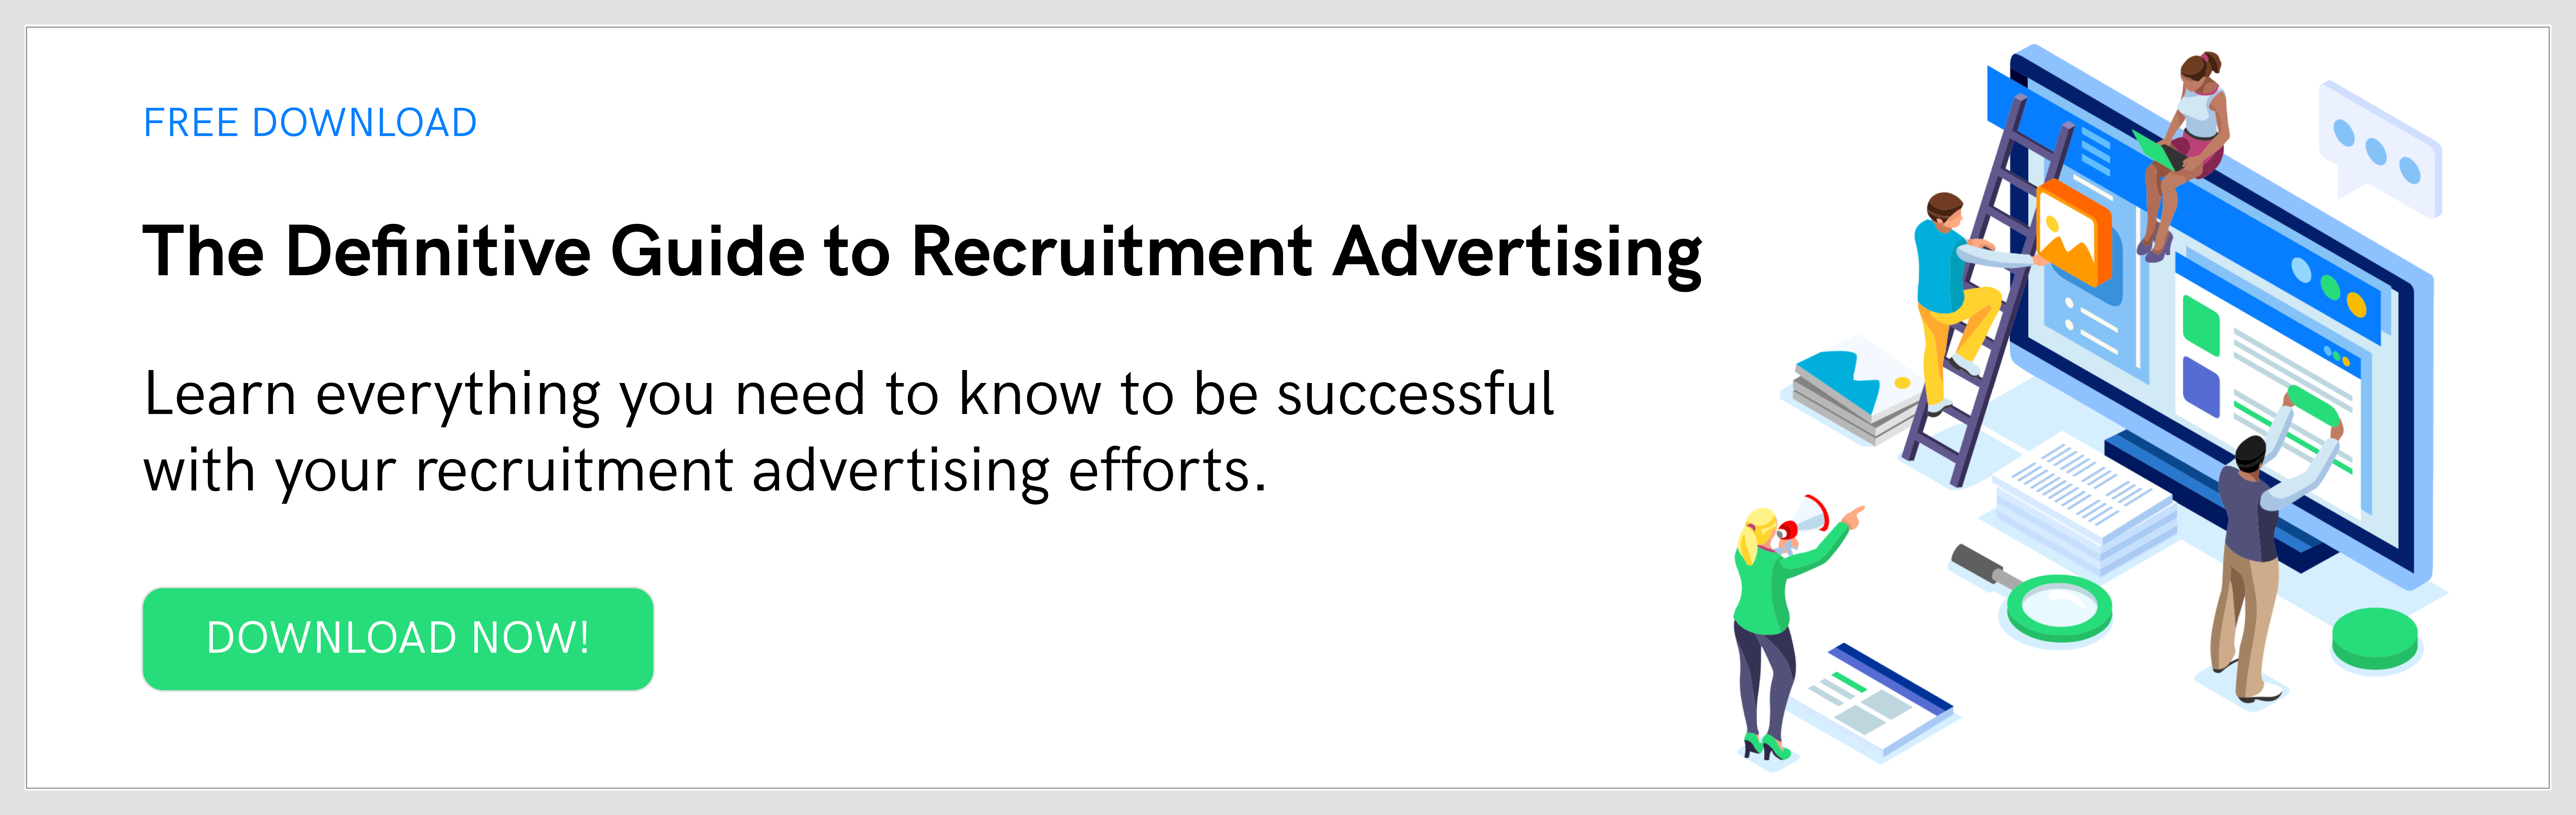 Get the Definitive Guide to Recruitment Advertising